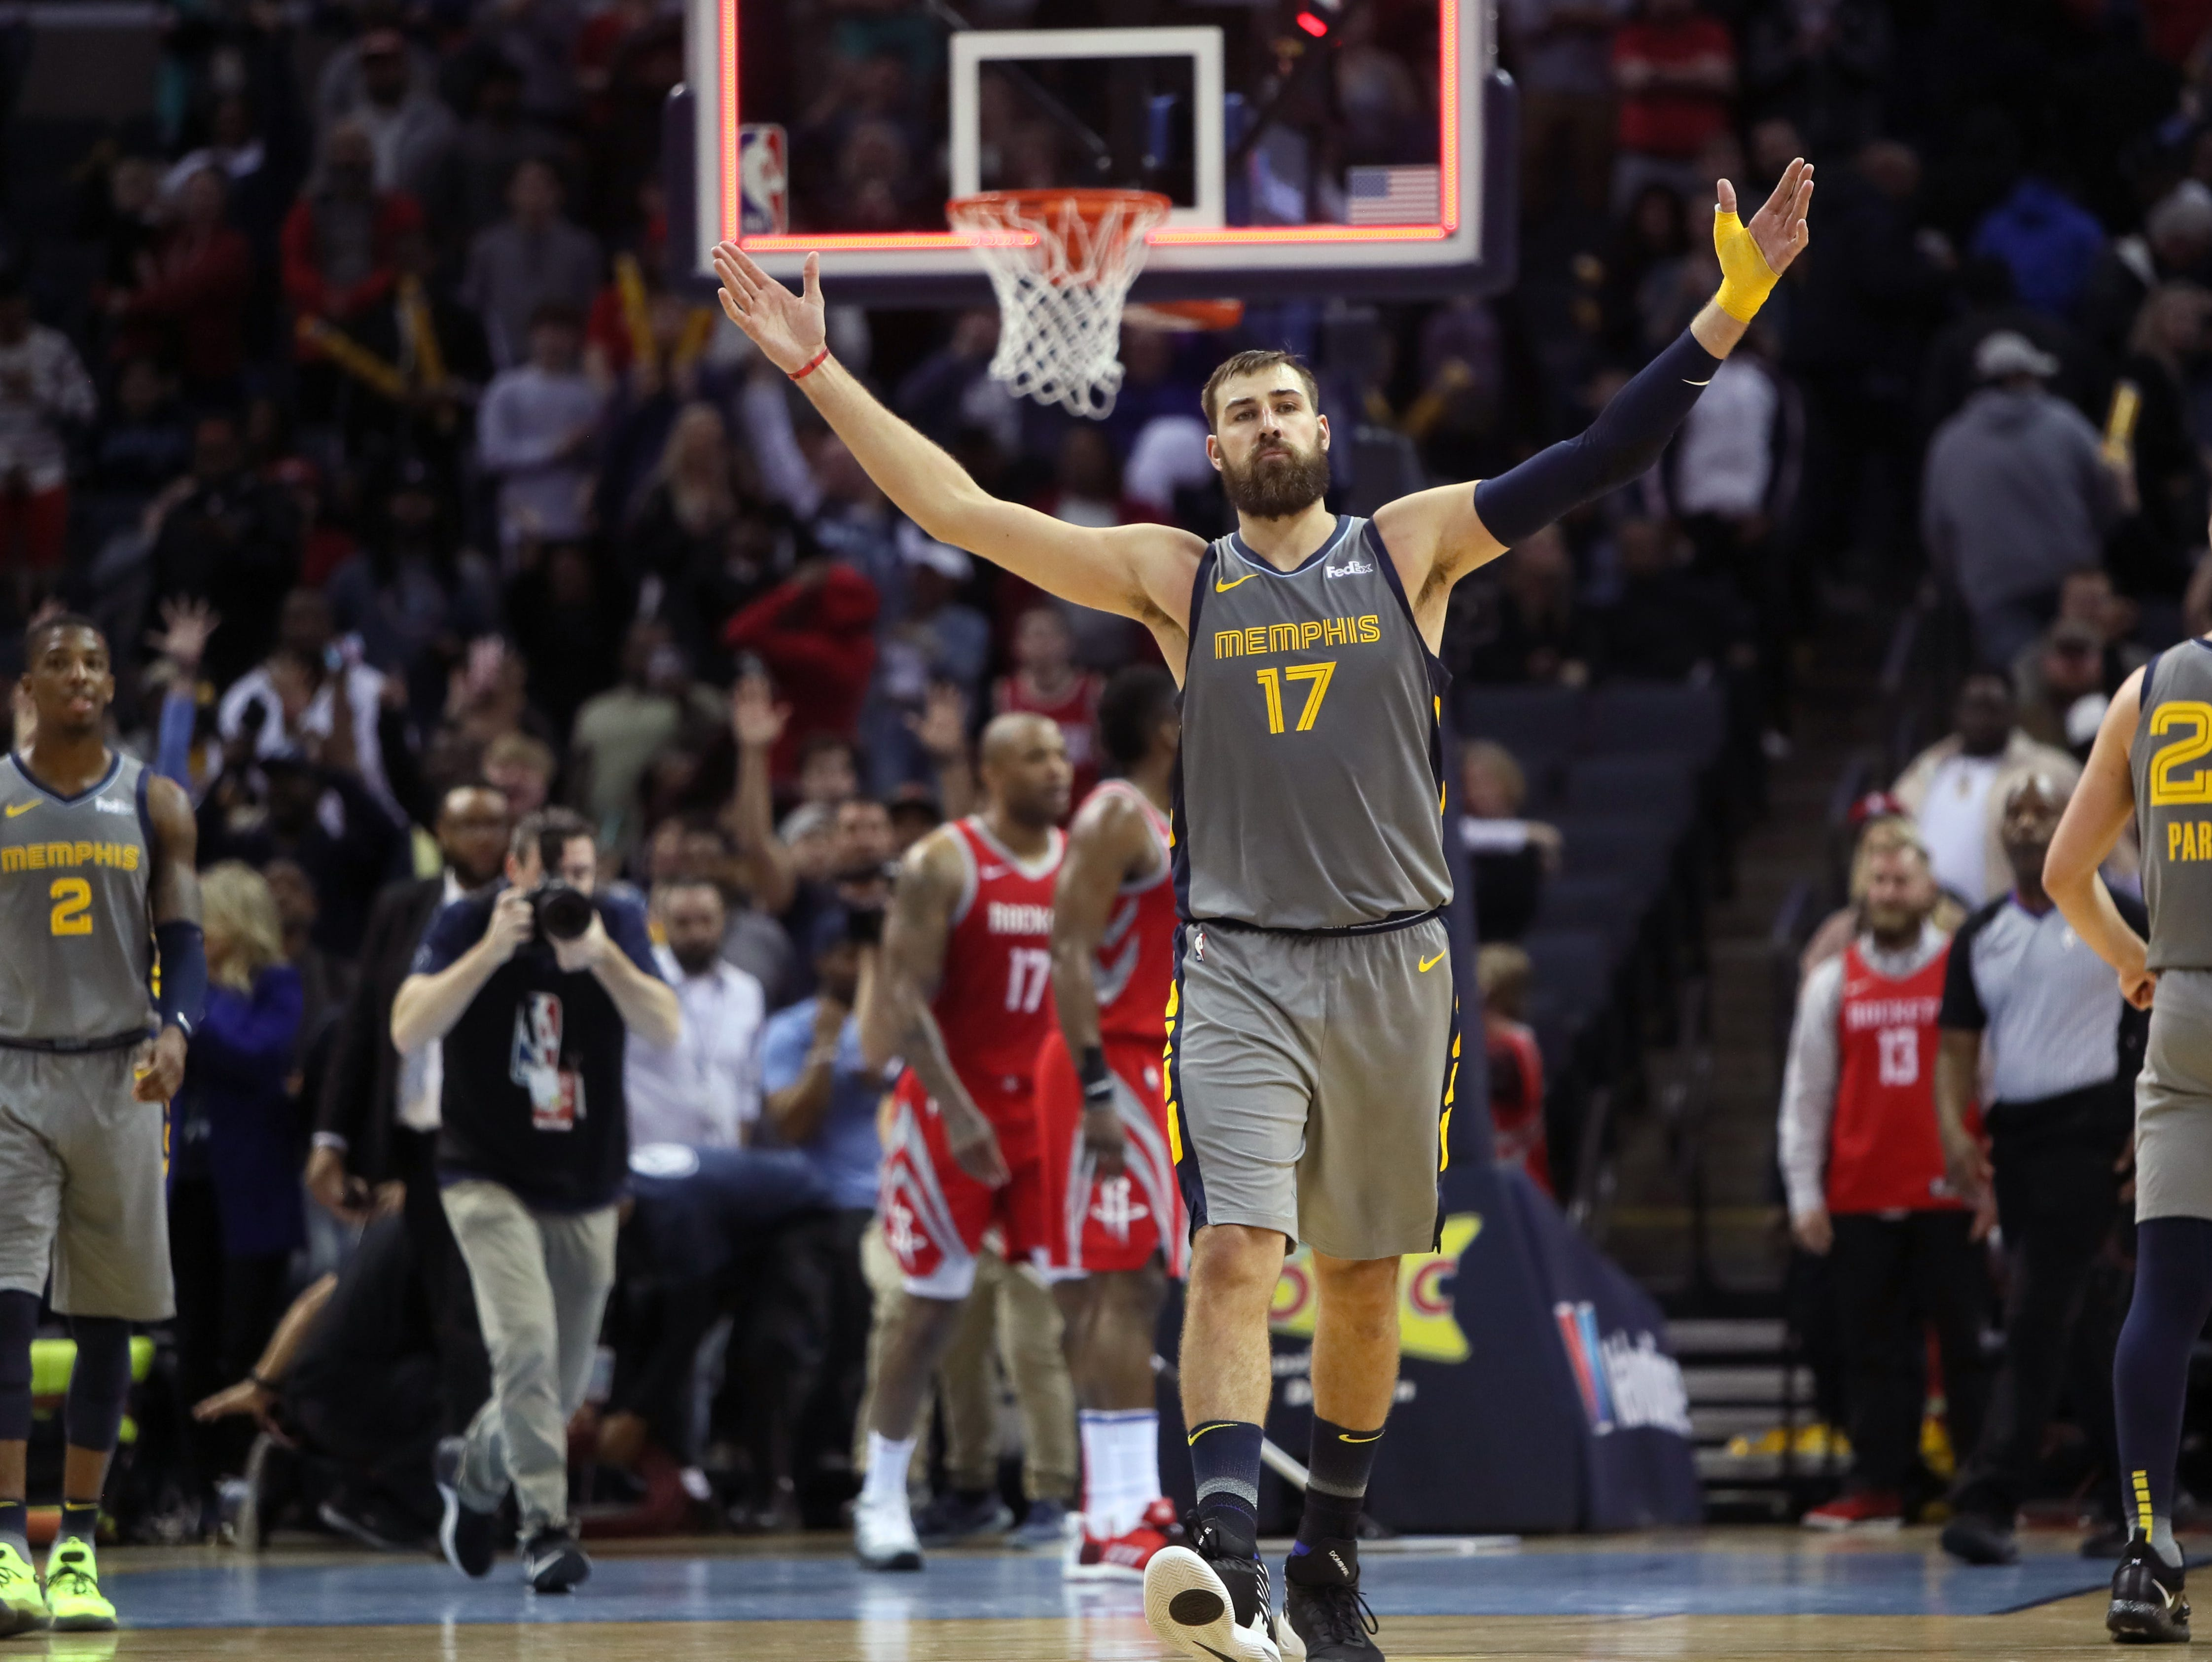 Memphis Grizzlies center Jonas Valanciunas walks off the floor after hitting a free throw to defeat the Houston Rockets in overtime 126-125 at the FedExForum on Wednesday, March 20, 2019.